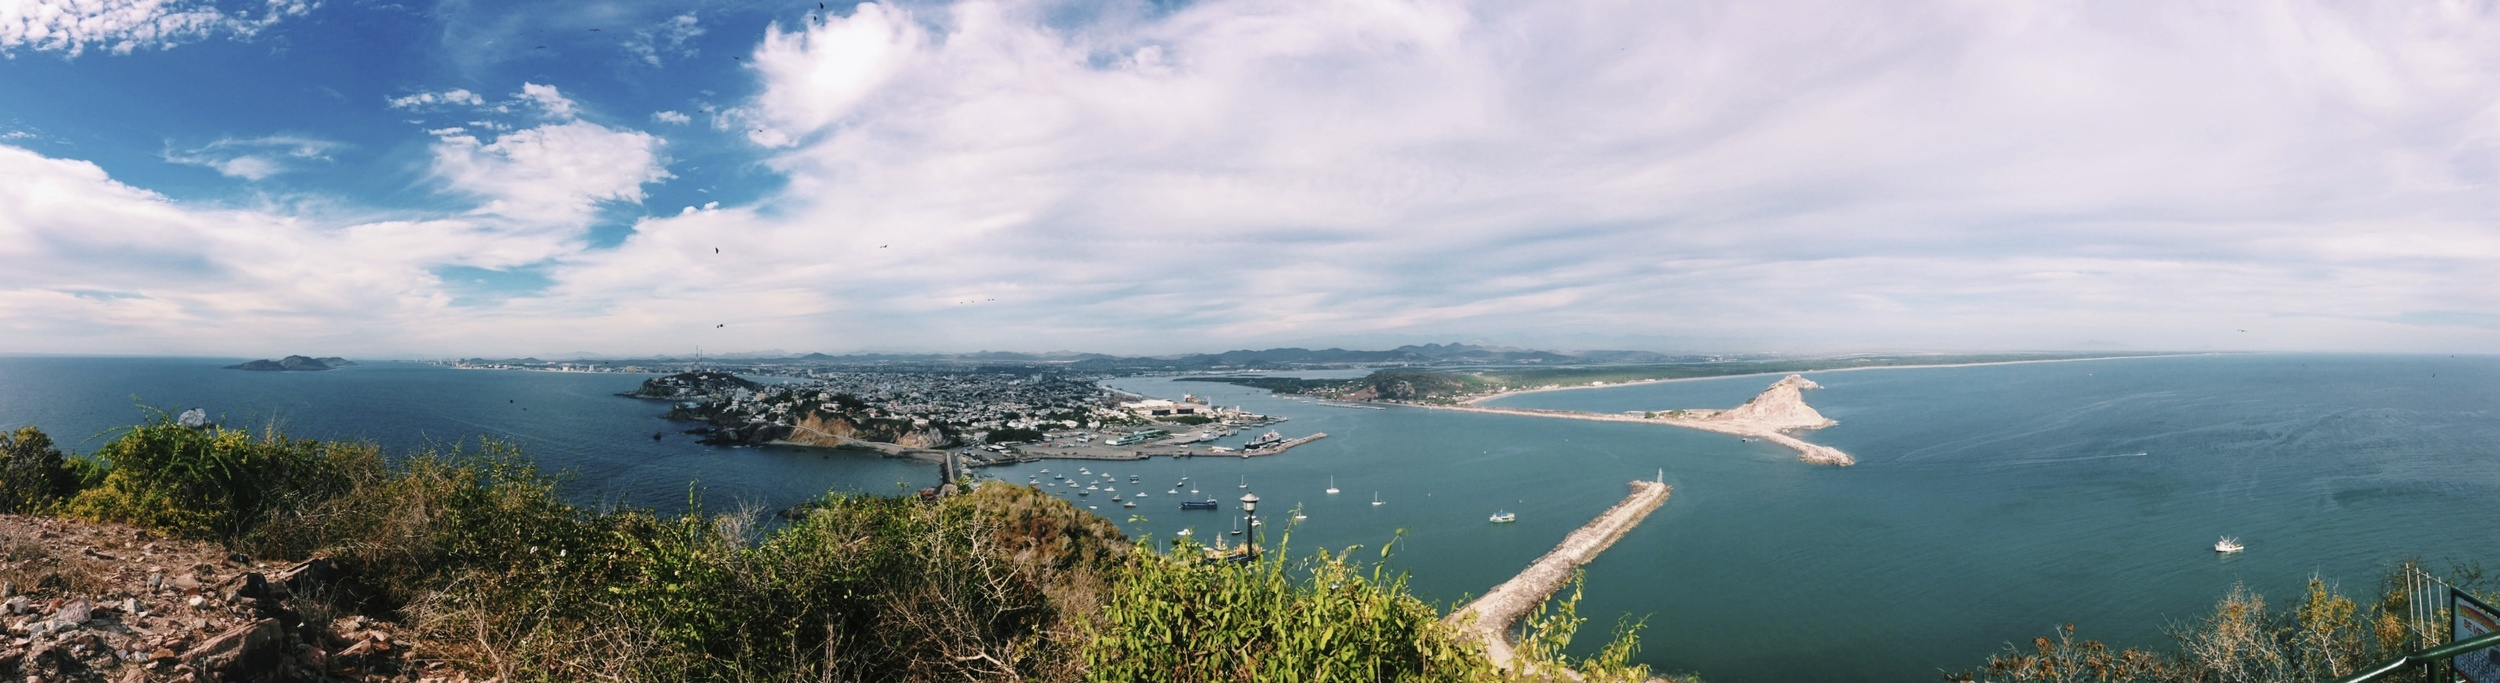 Panaramic view of Mazatlan from the second tallest natural lighthouse in the world.